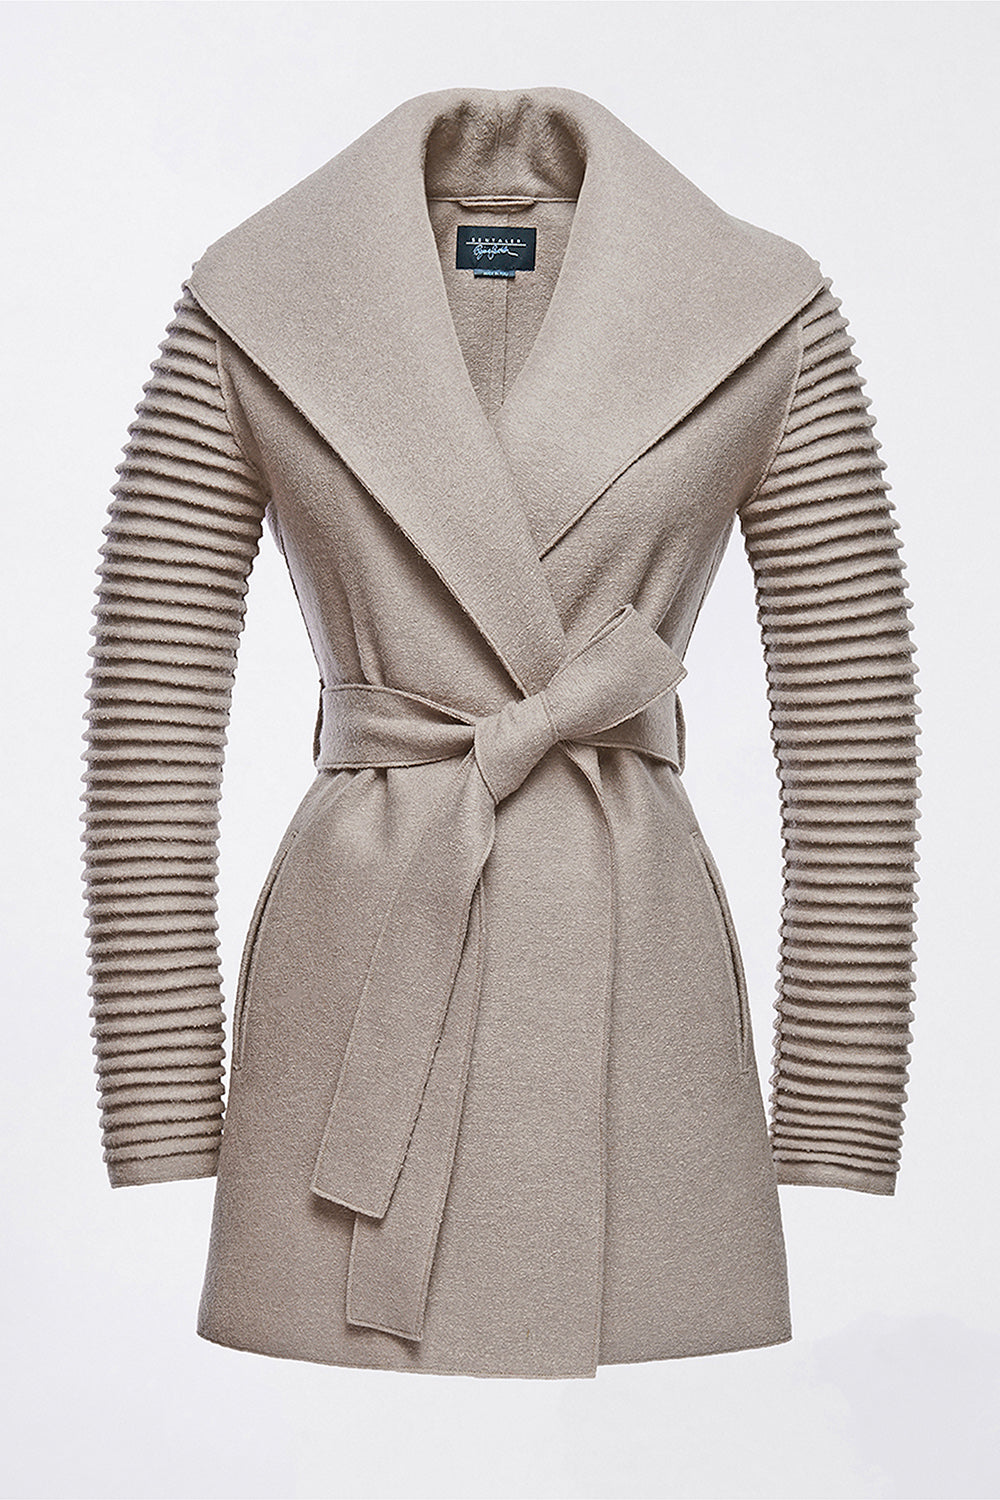 Sentaler Wrap Coat with Ribbed Sleeves featured in Superfine Alpaca and available in Simply Taupe. Seen off model.